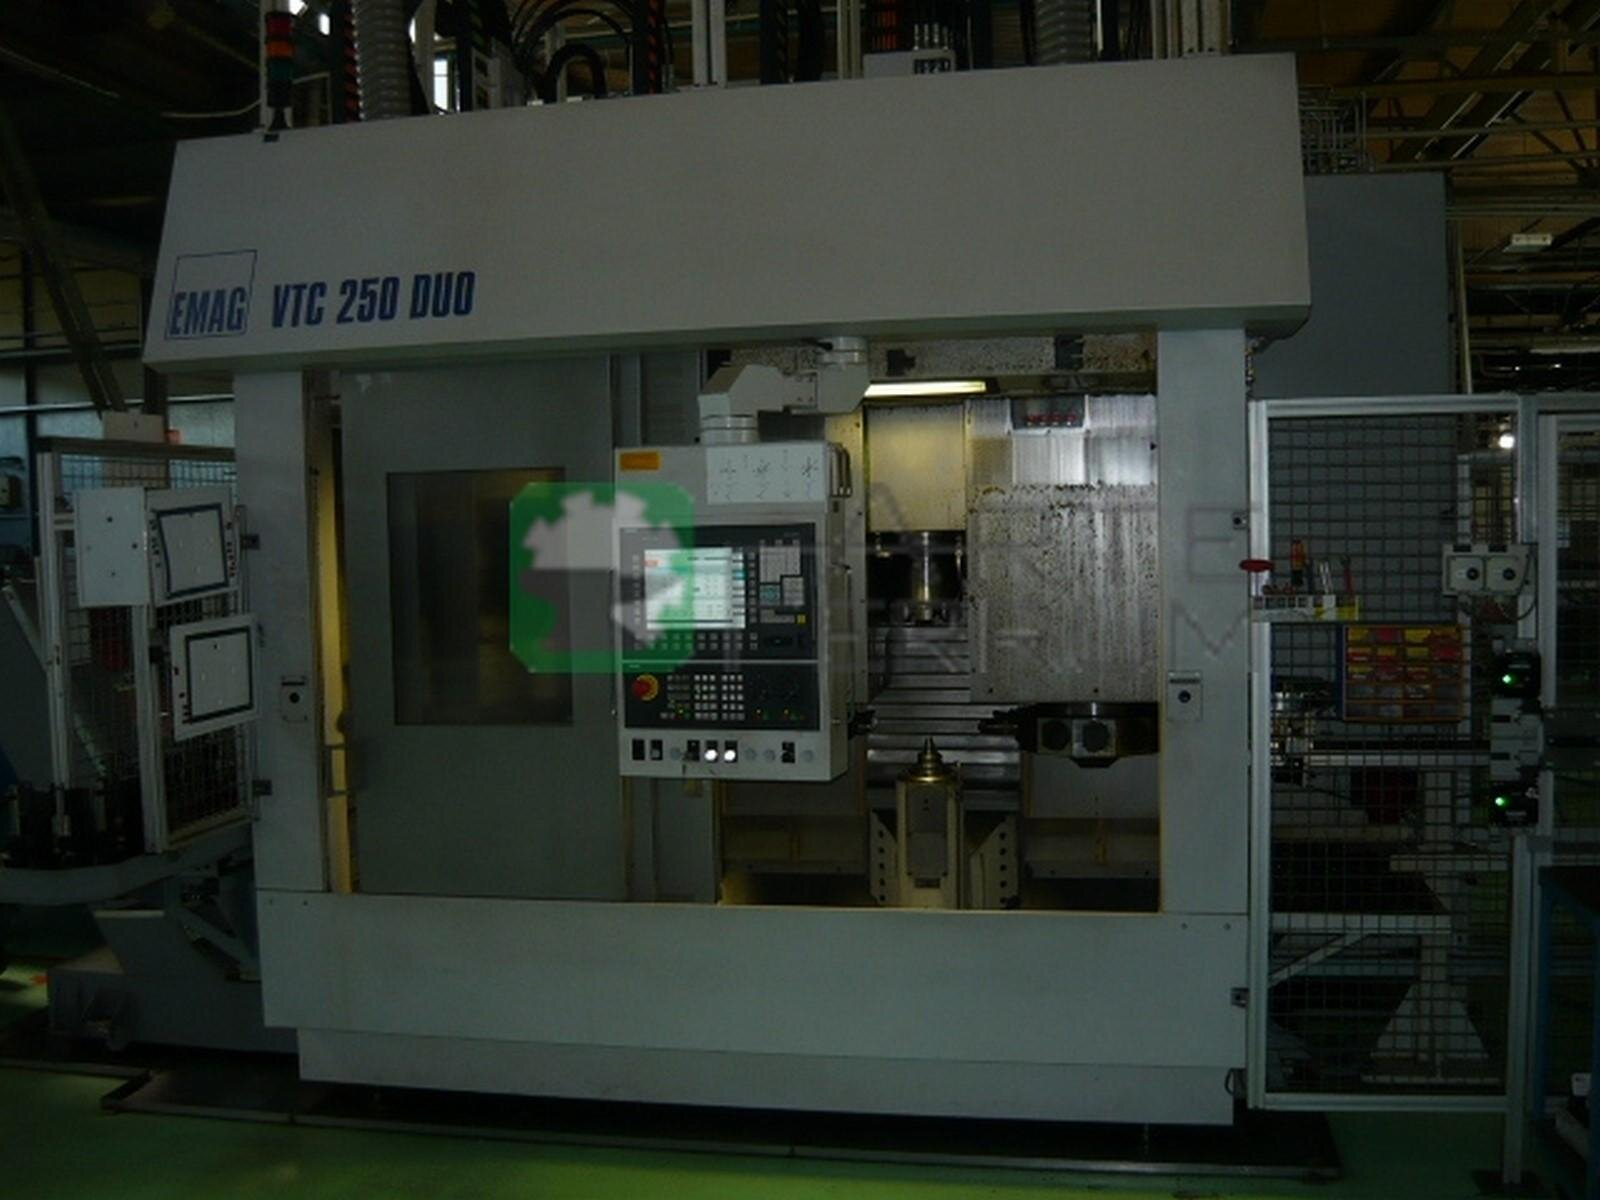 EMAG VTC 250 DUO vertical lathe (14)10